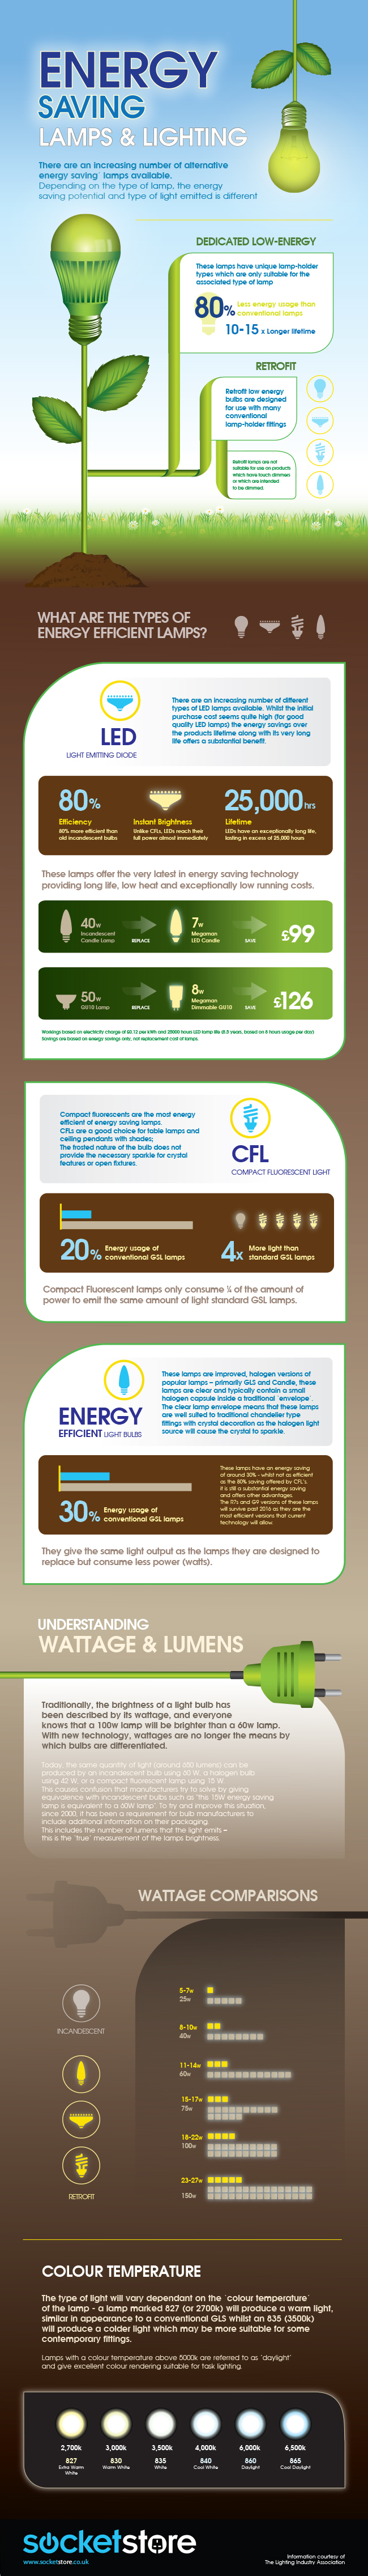 Energy Saving Lighting Infographic